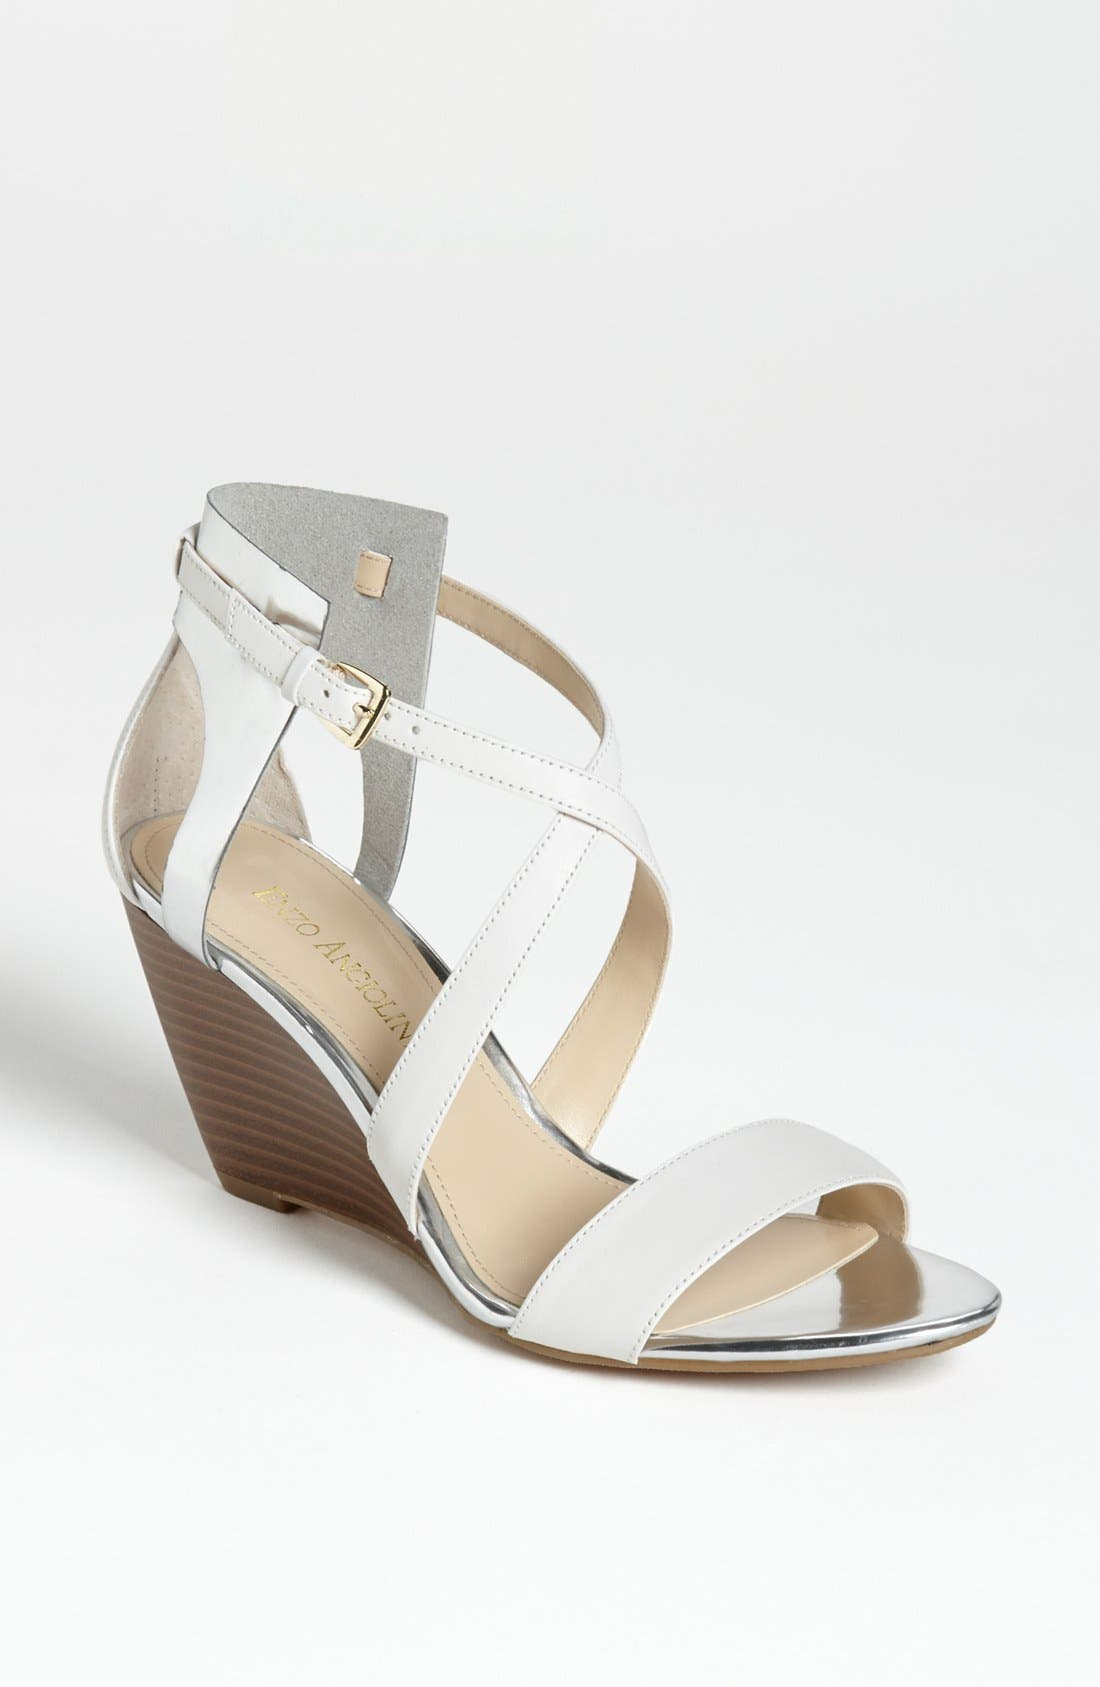 Alternate Image 1 Selected - Enzo Angiolini 'McKinney' Wedge Sandal